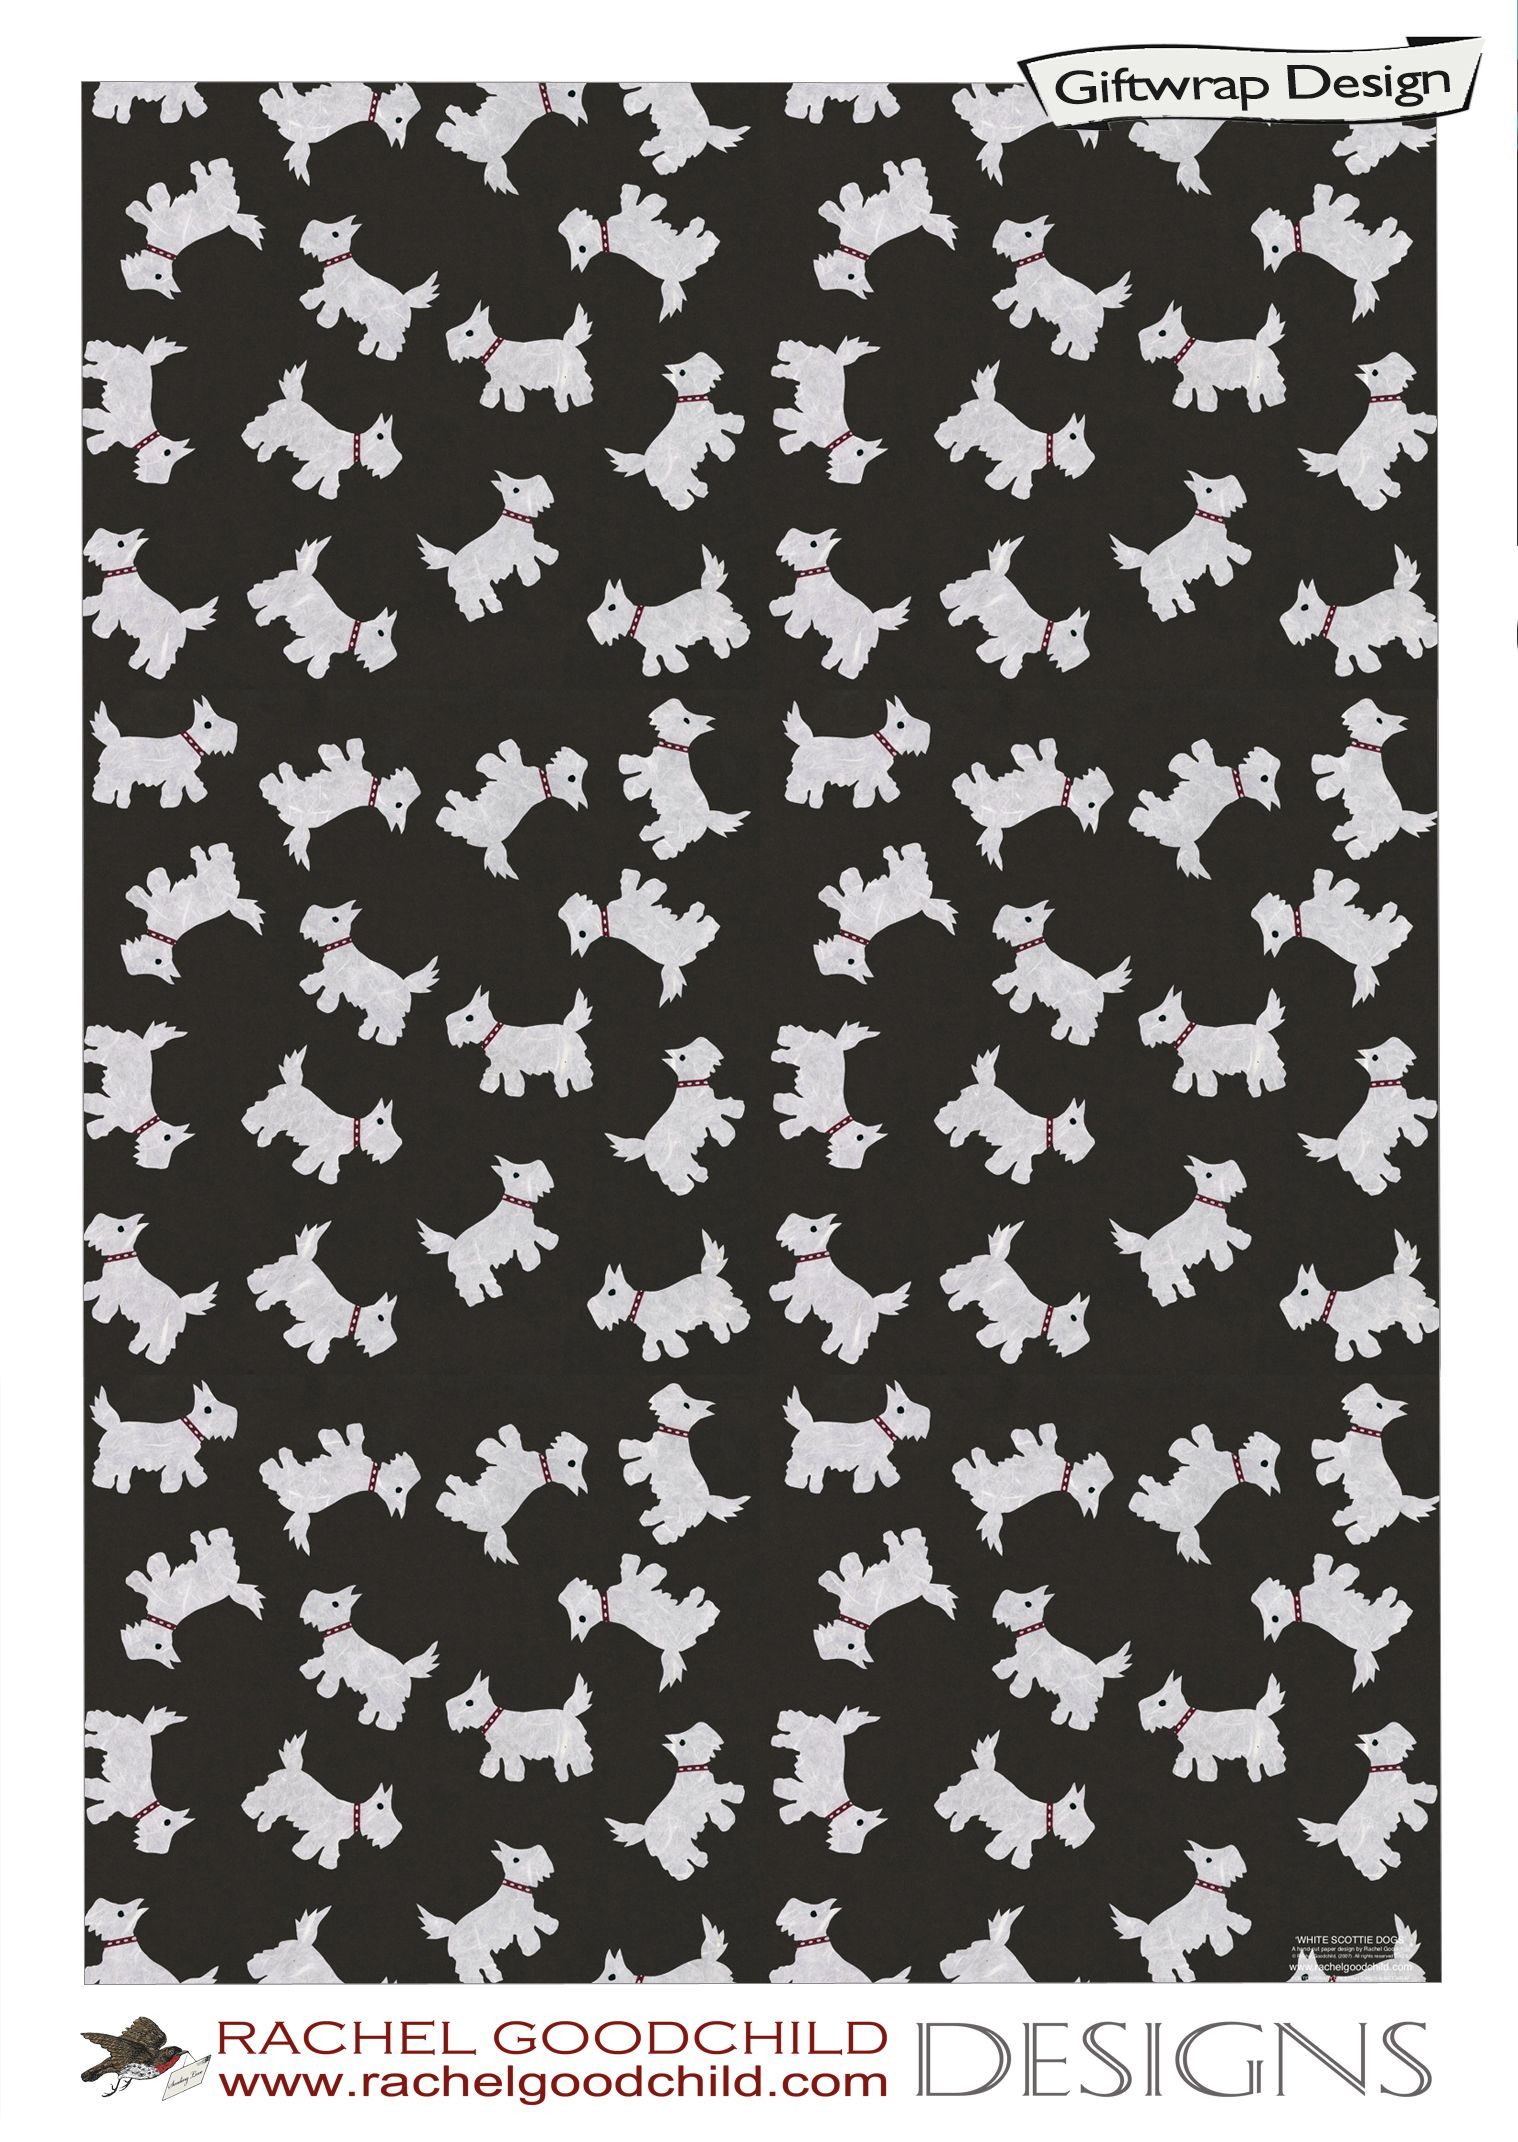 White Scottie Dog Design By Rachel Goodchild Designs Paper Party Decorations Flowery Wallpaper Textile Patterns